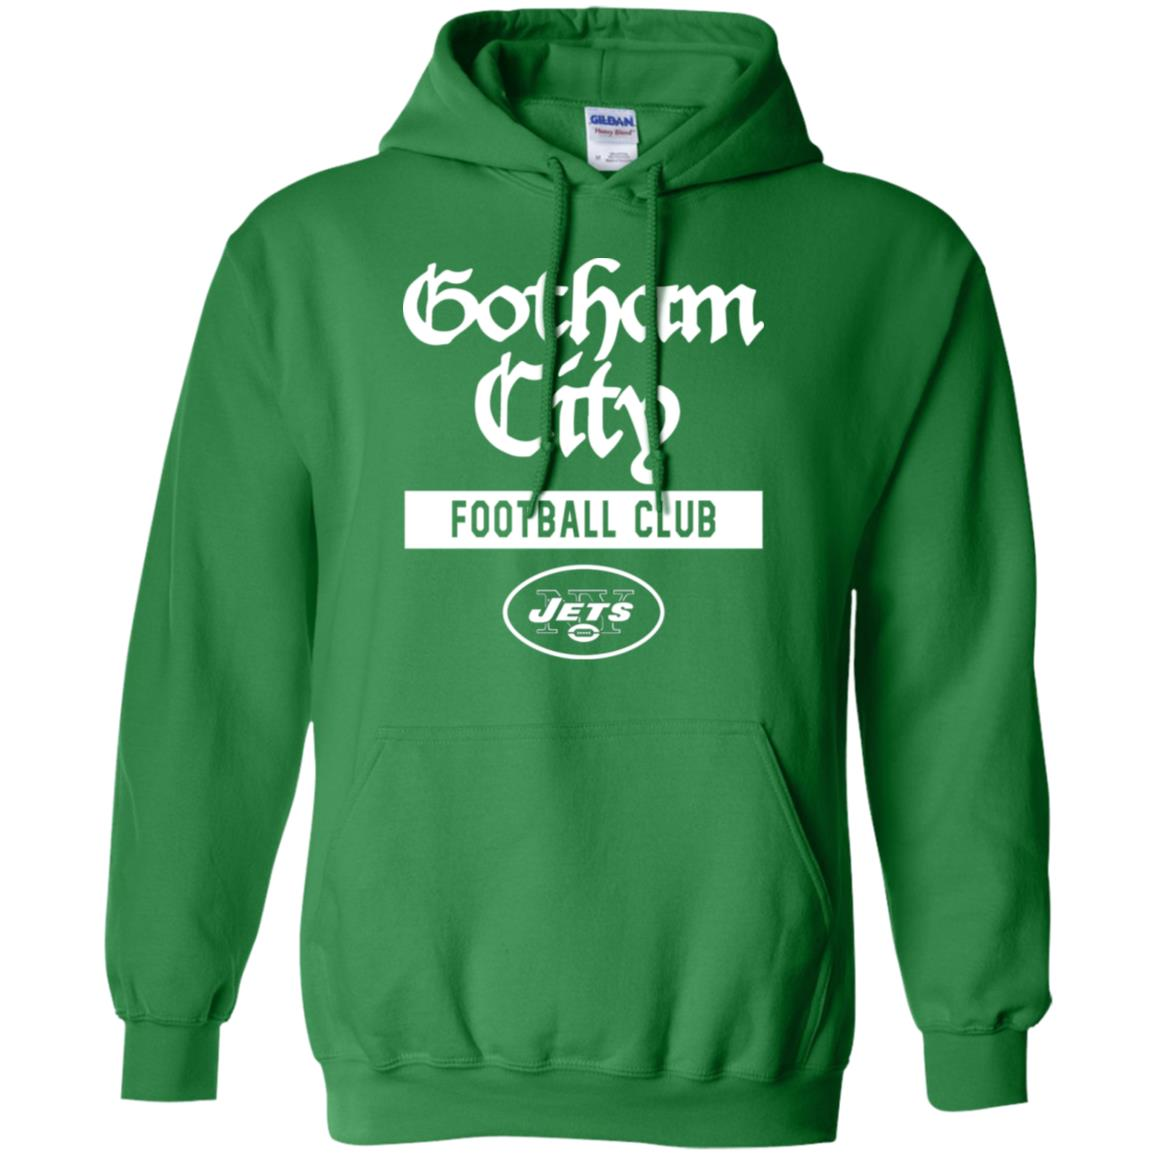 f91f1700c New York Jets Gotham City shirt - image 4215 510x510